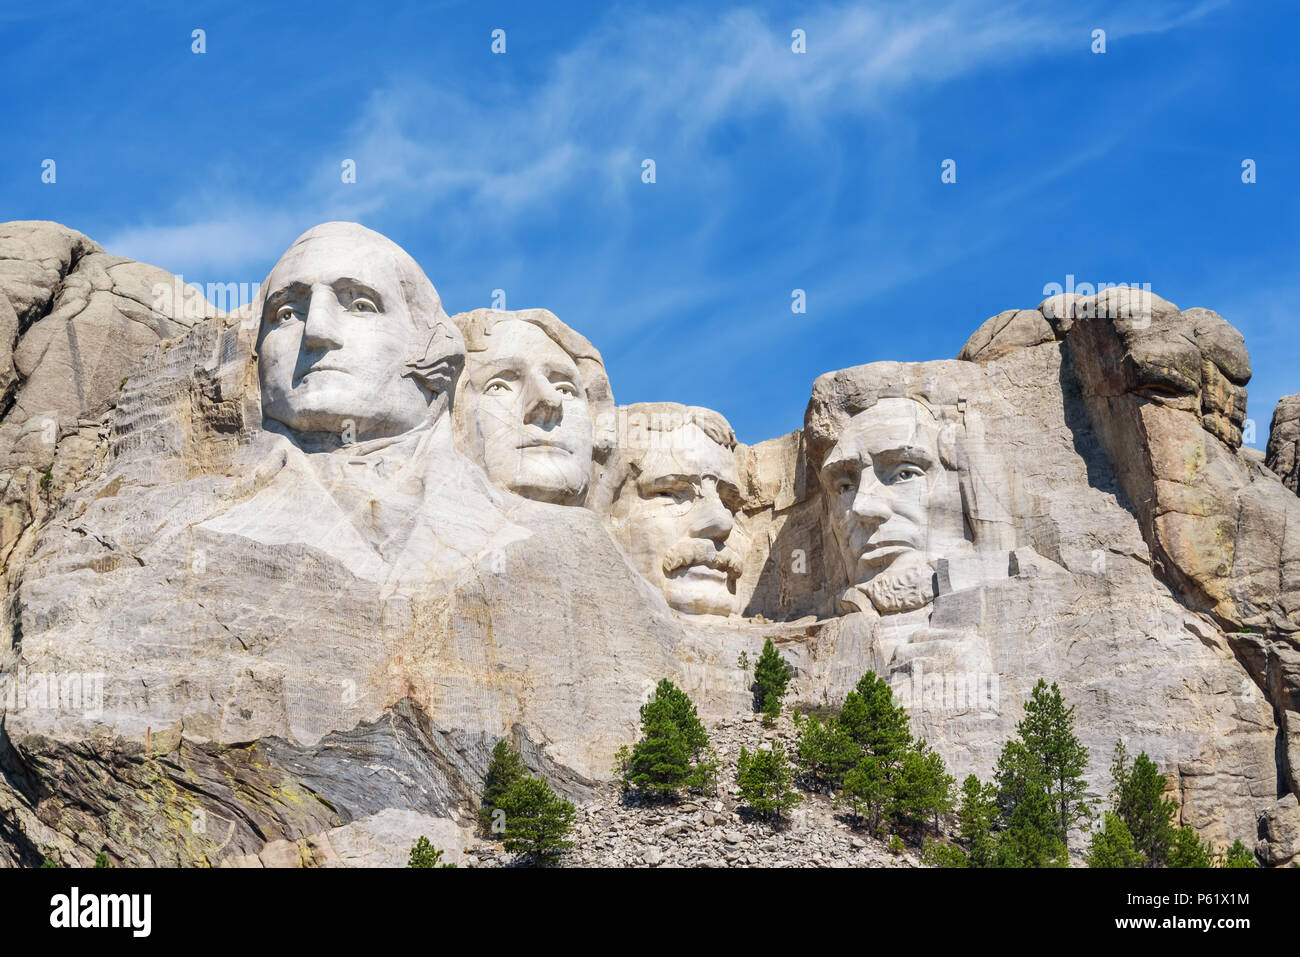 Presidential sculpture at Mount Rushmore national memorial, USA. Sunny day, blue sky. - Stock Image